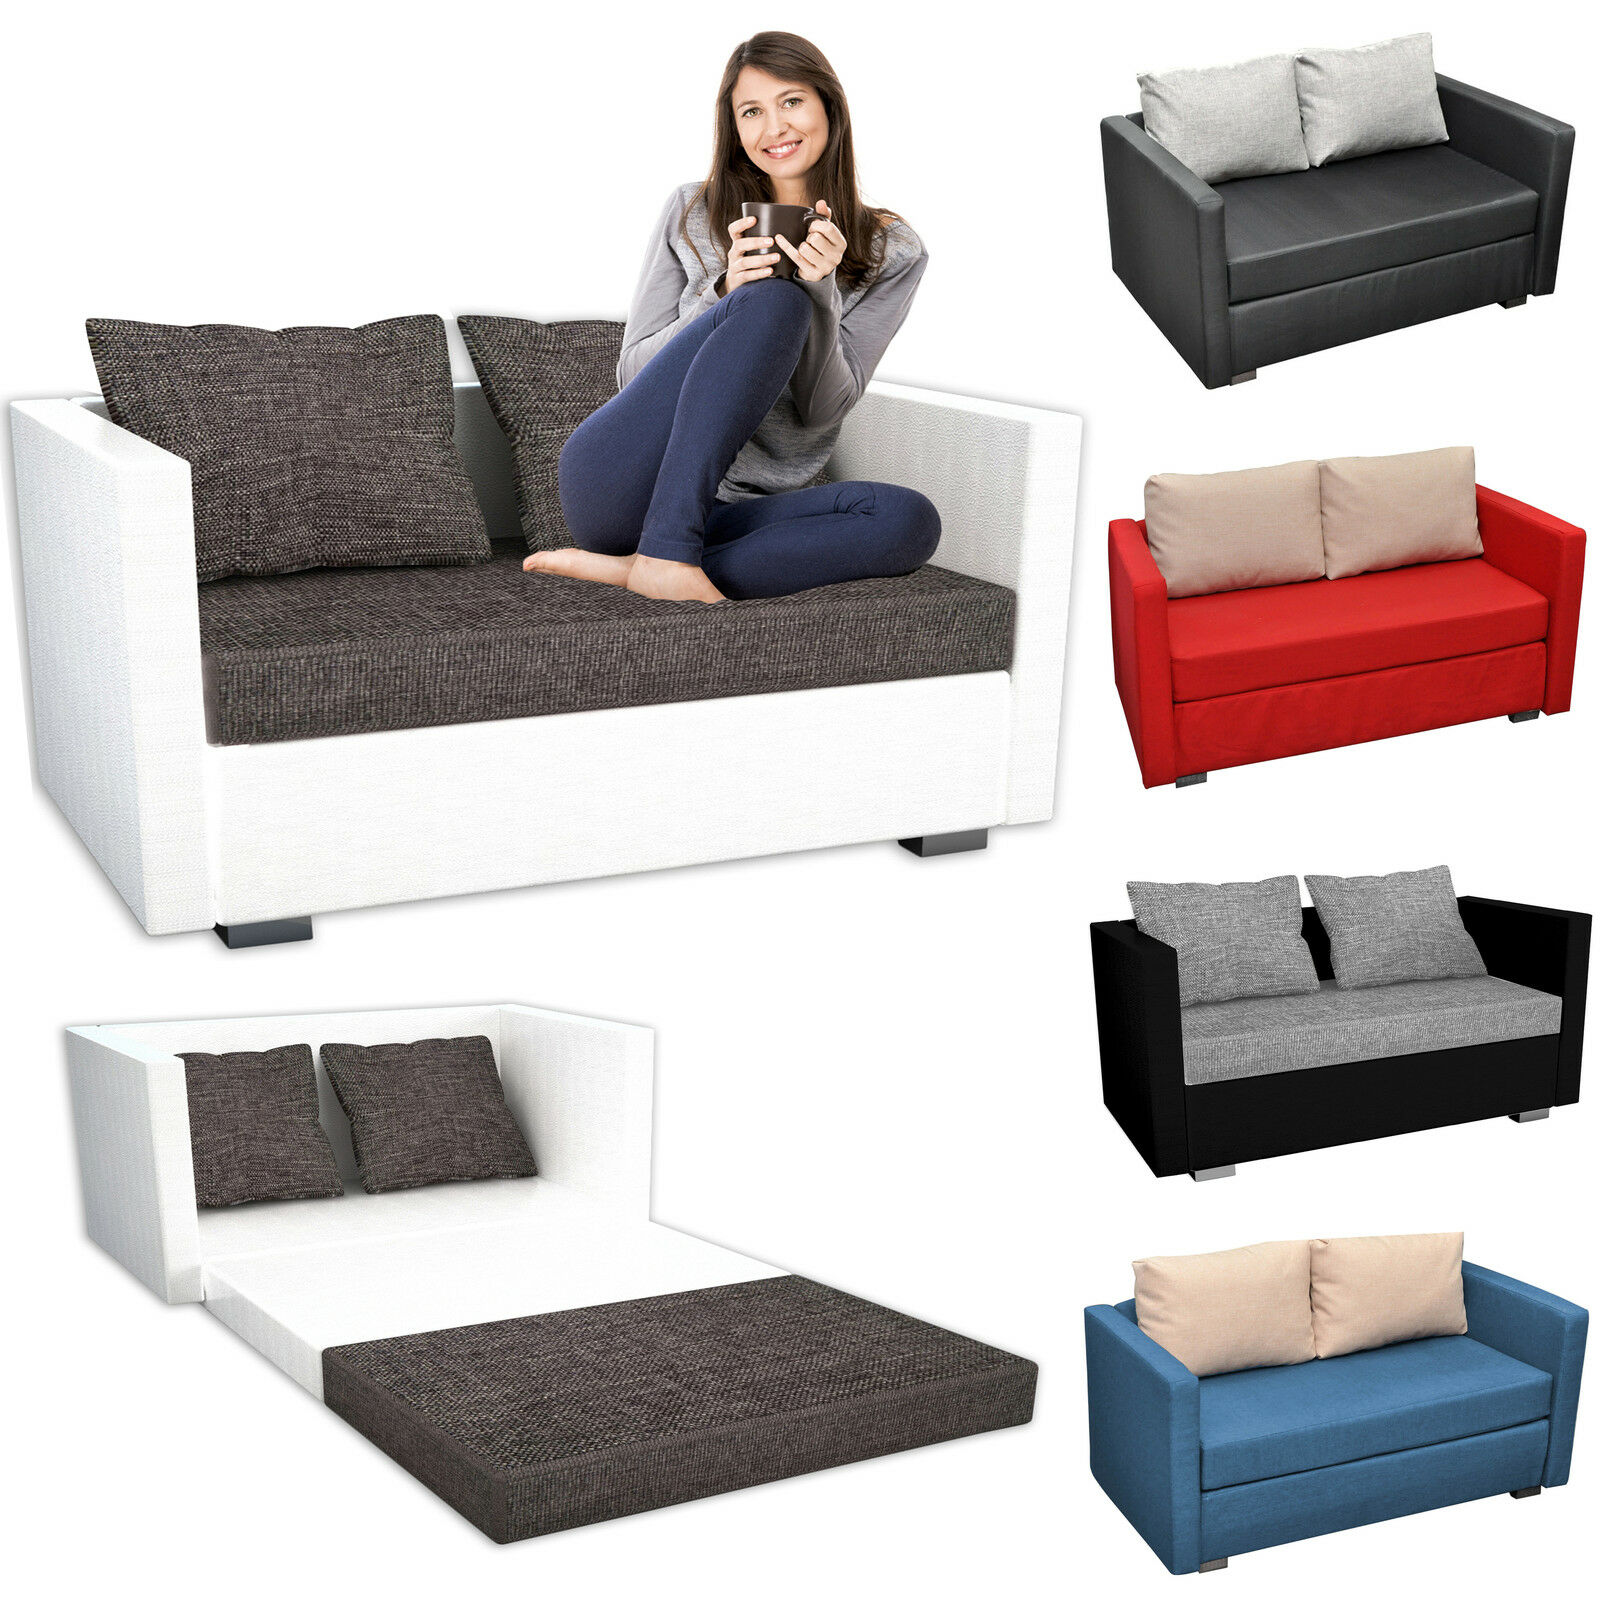 vcm 2er schlafsofa sofabett couch sofa mit schlaffunktion material und farbwahl eur 229 00. Black Bedroom Furniture Sets. Home Design Ideas